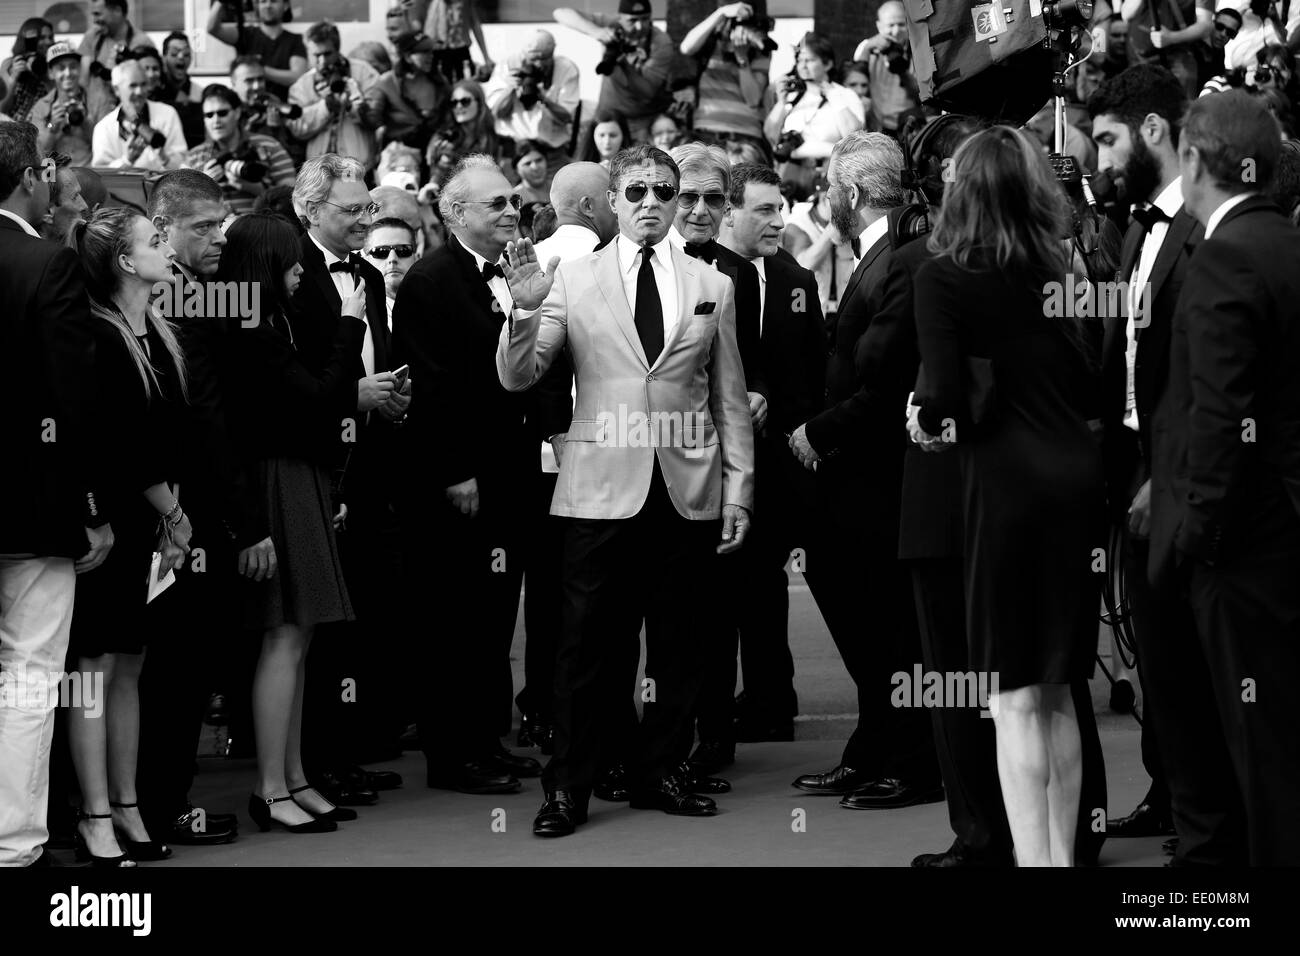 CANNES, FRANCE - MAY 18: Sylvester Stallone attends 'The Expendables 3' Premiere during the 67th Cannes Film Festival Stock Photo